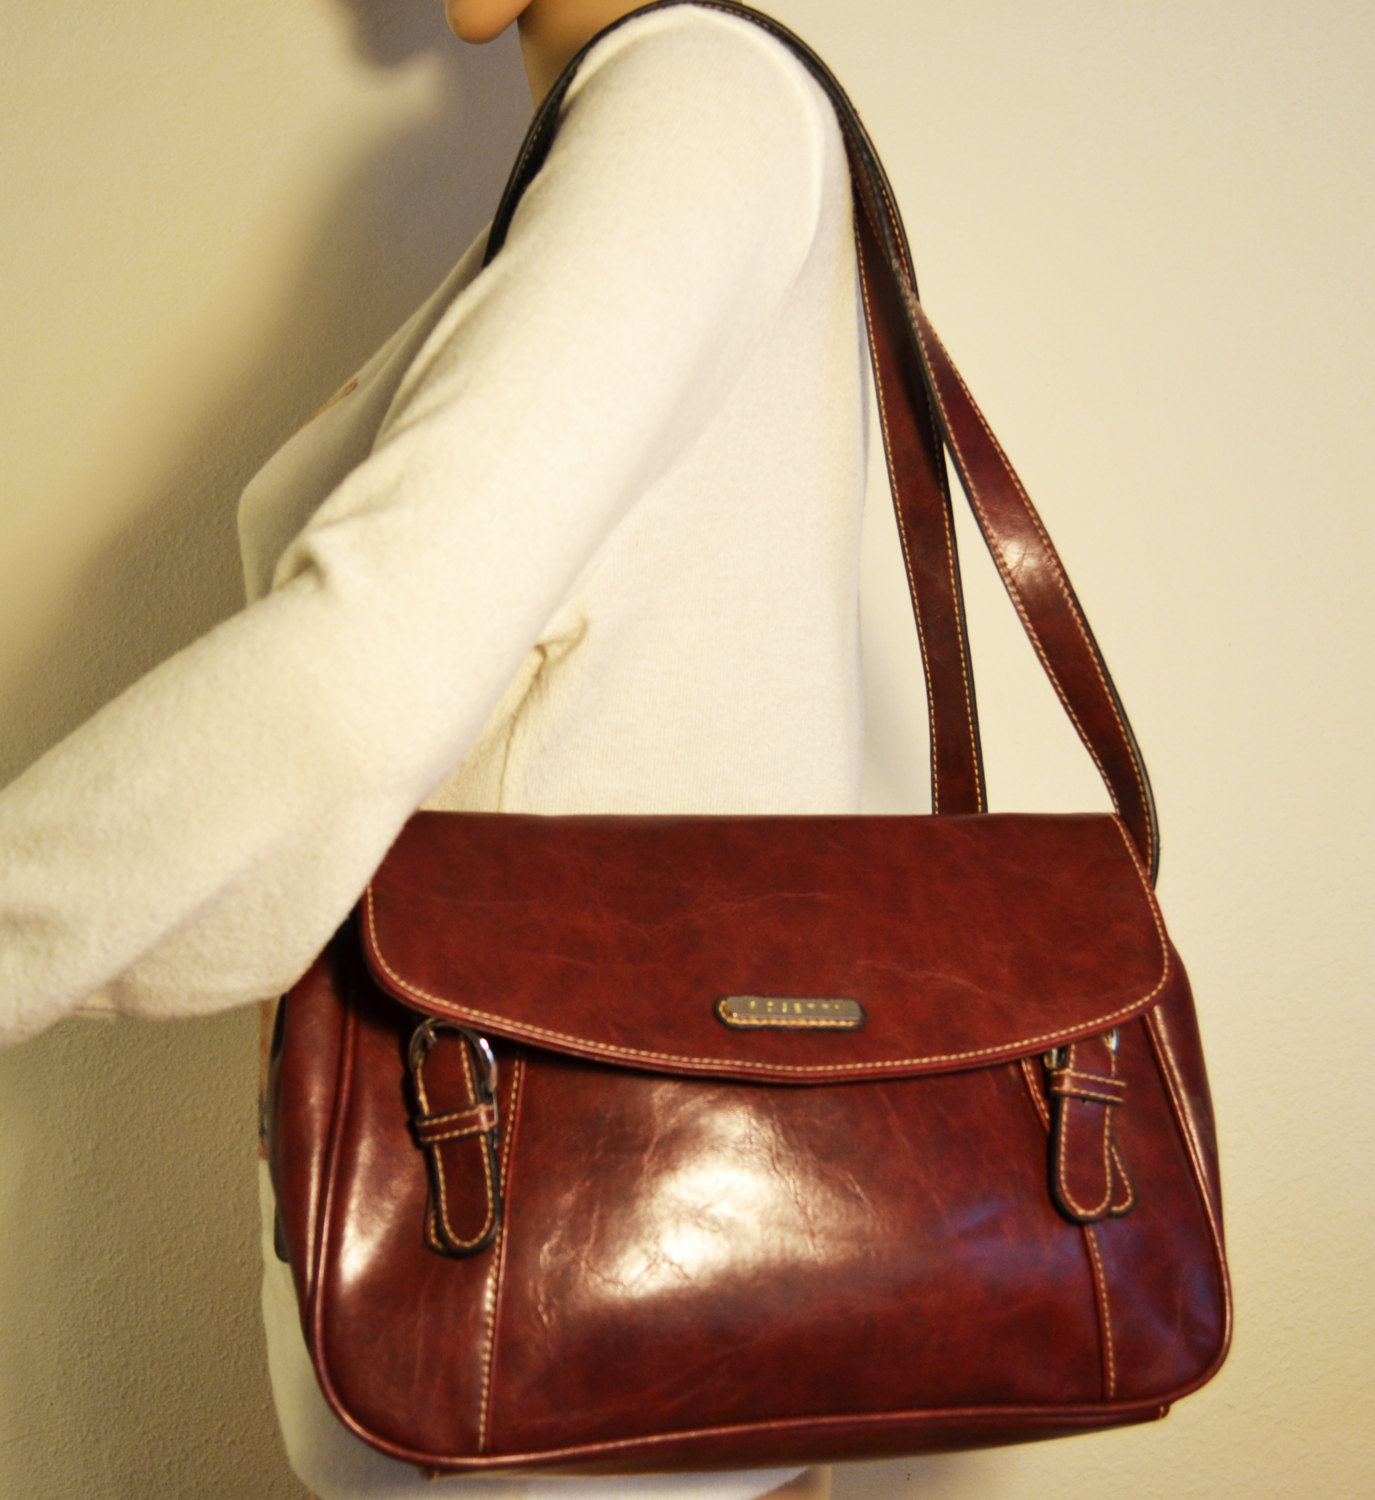 how to clean white leather purse at home